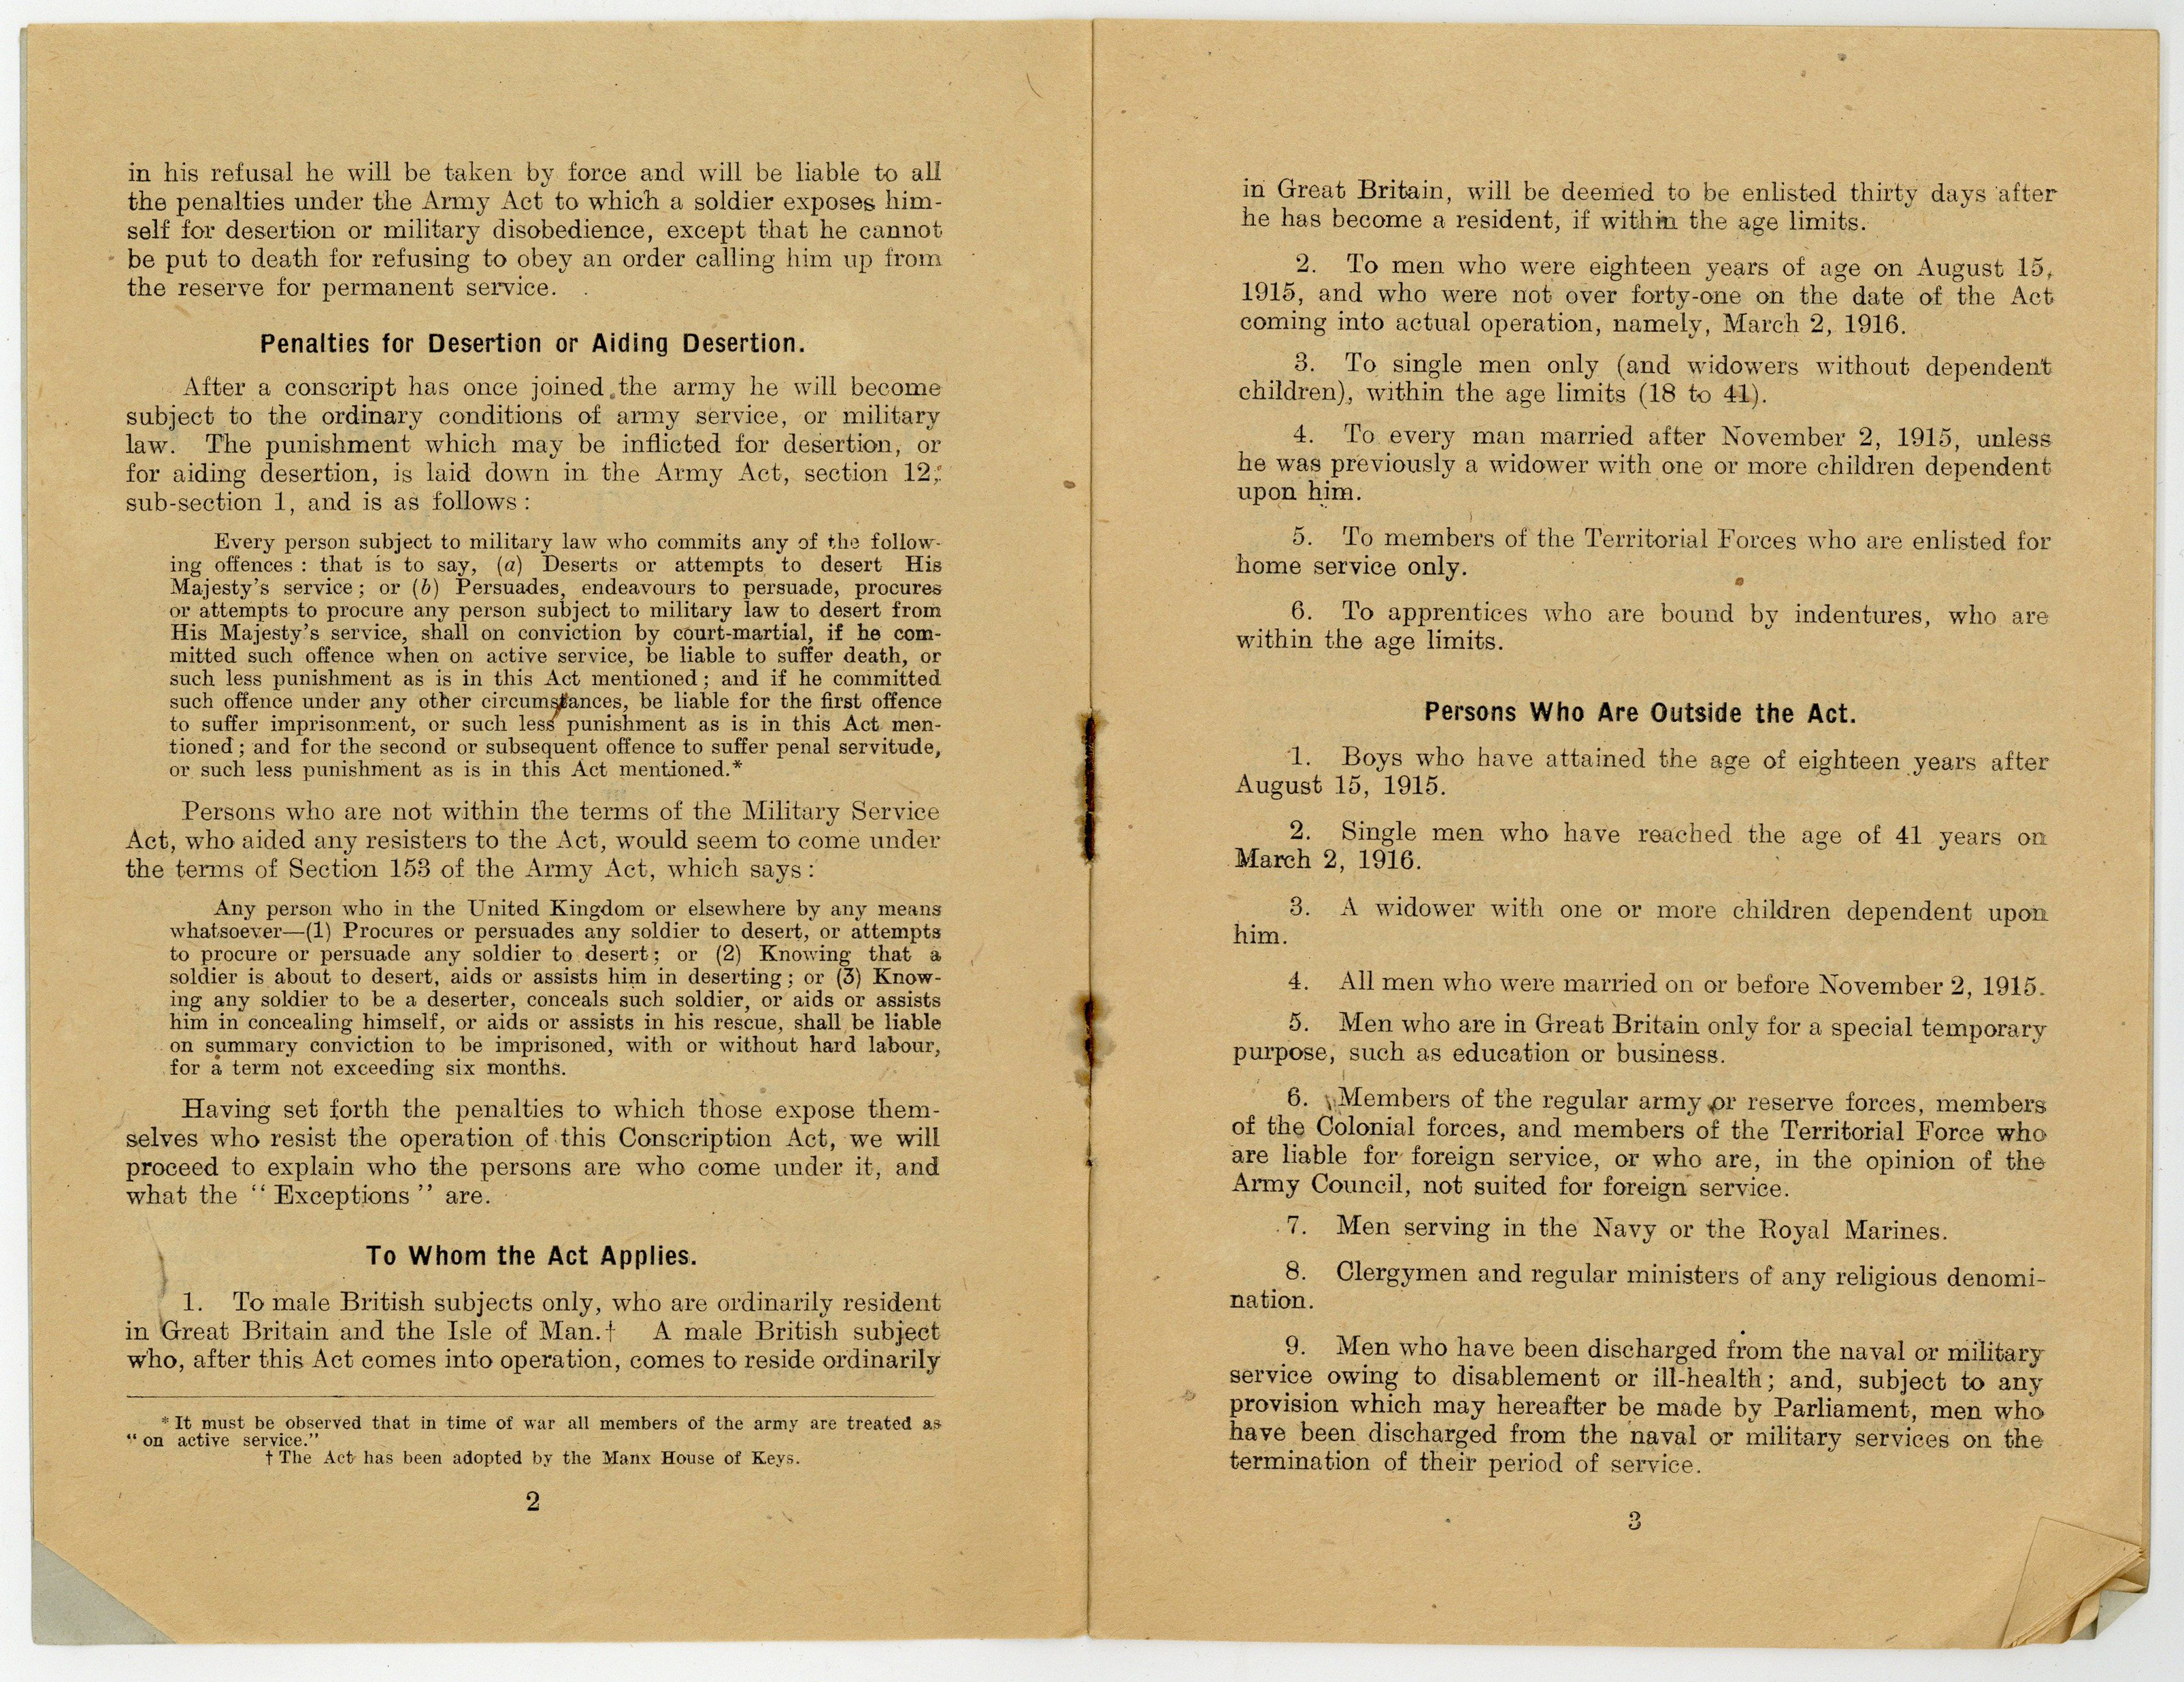 Pages 2-3 of The Military Service Act Fully and Clearly Explained, outlining Penalties for Disertion of Aiding Disertion, To Whom the Act Applies and Persons who are Outside the Act, by Philip Snowden (MP), 1916 (20th Century Collection, 343.0122 SNO)